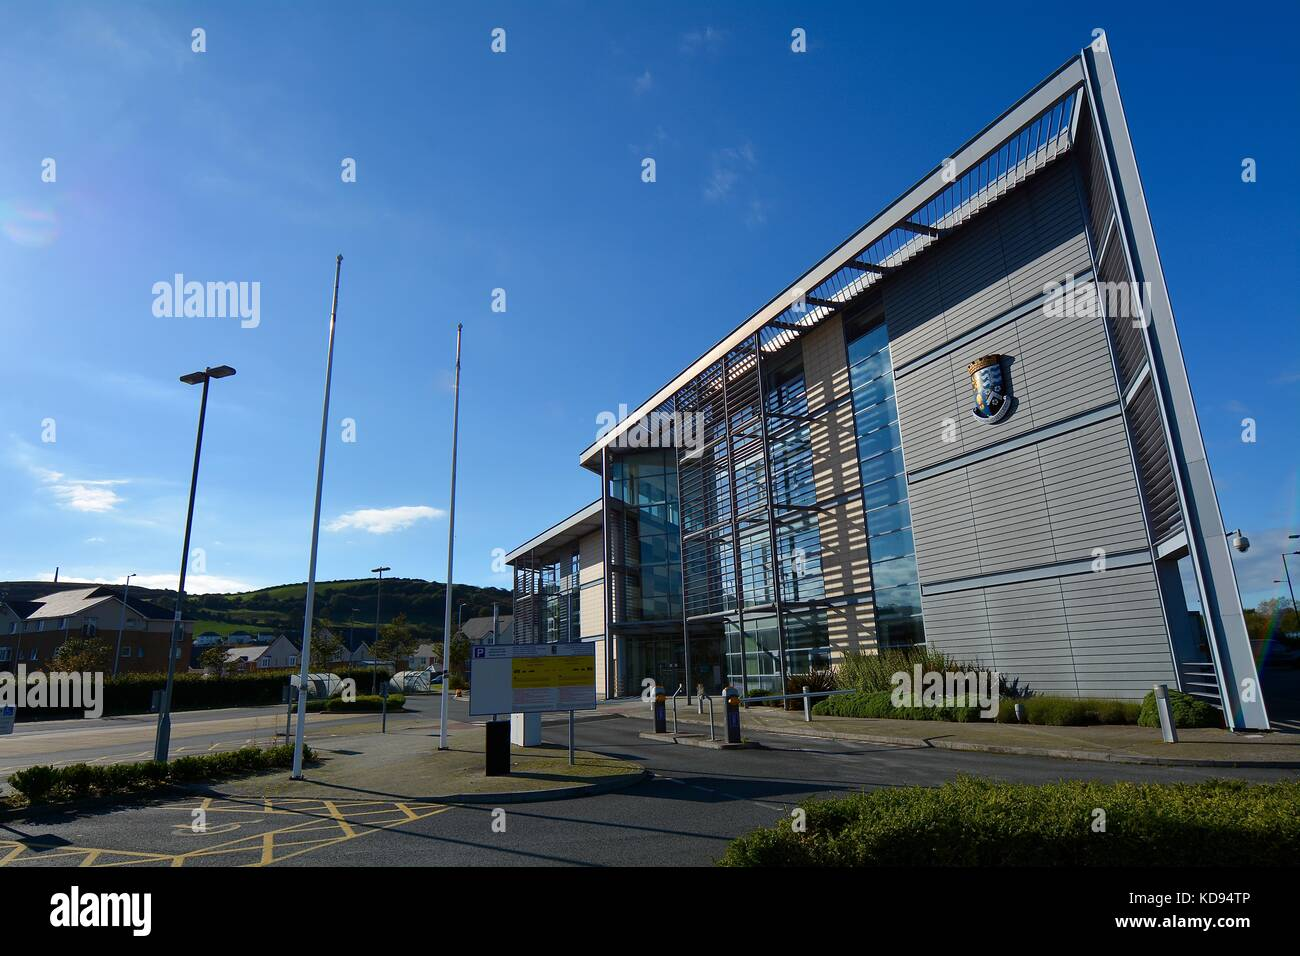 Aberystwyth Town Council - Stock Image